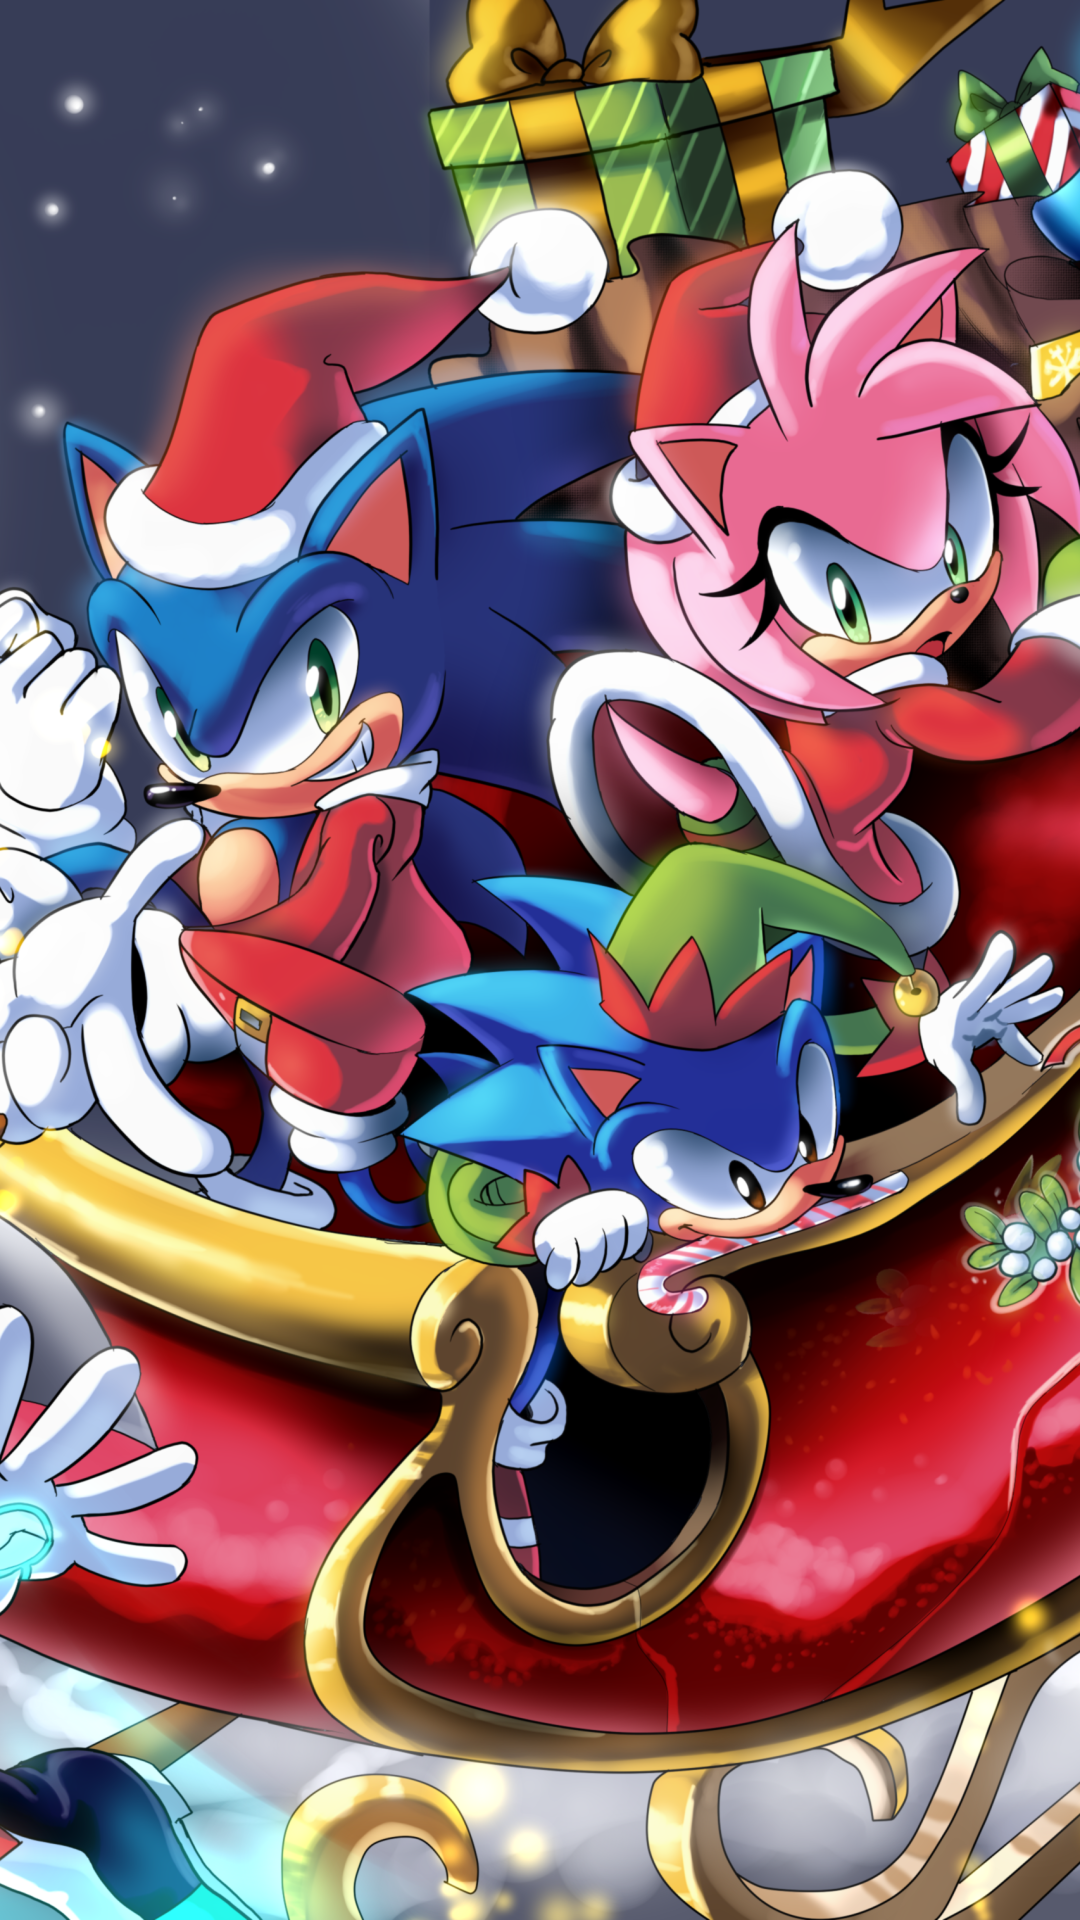 Minimalist Sonic Hd Wallpaper Android In 2020 Snowman Wallpaper Hd Wallpaper Android Android Wallpaper